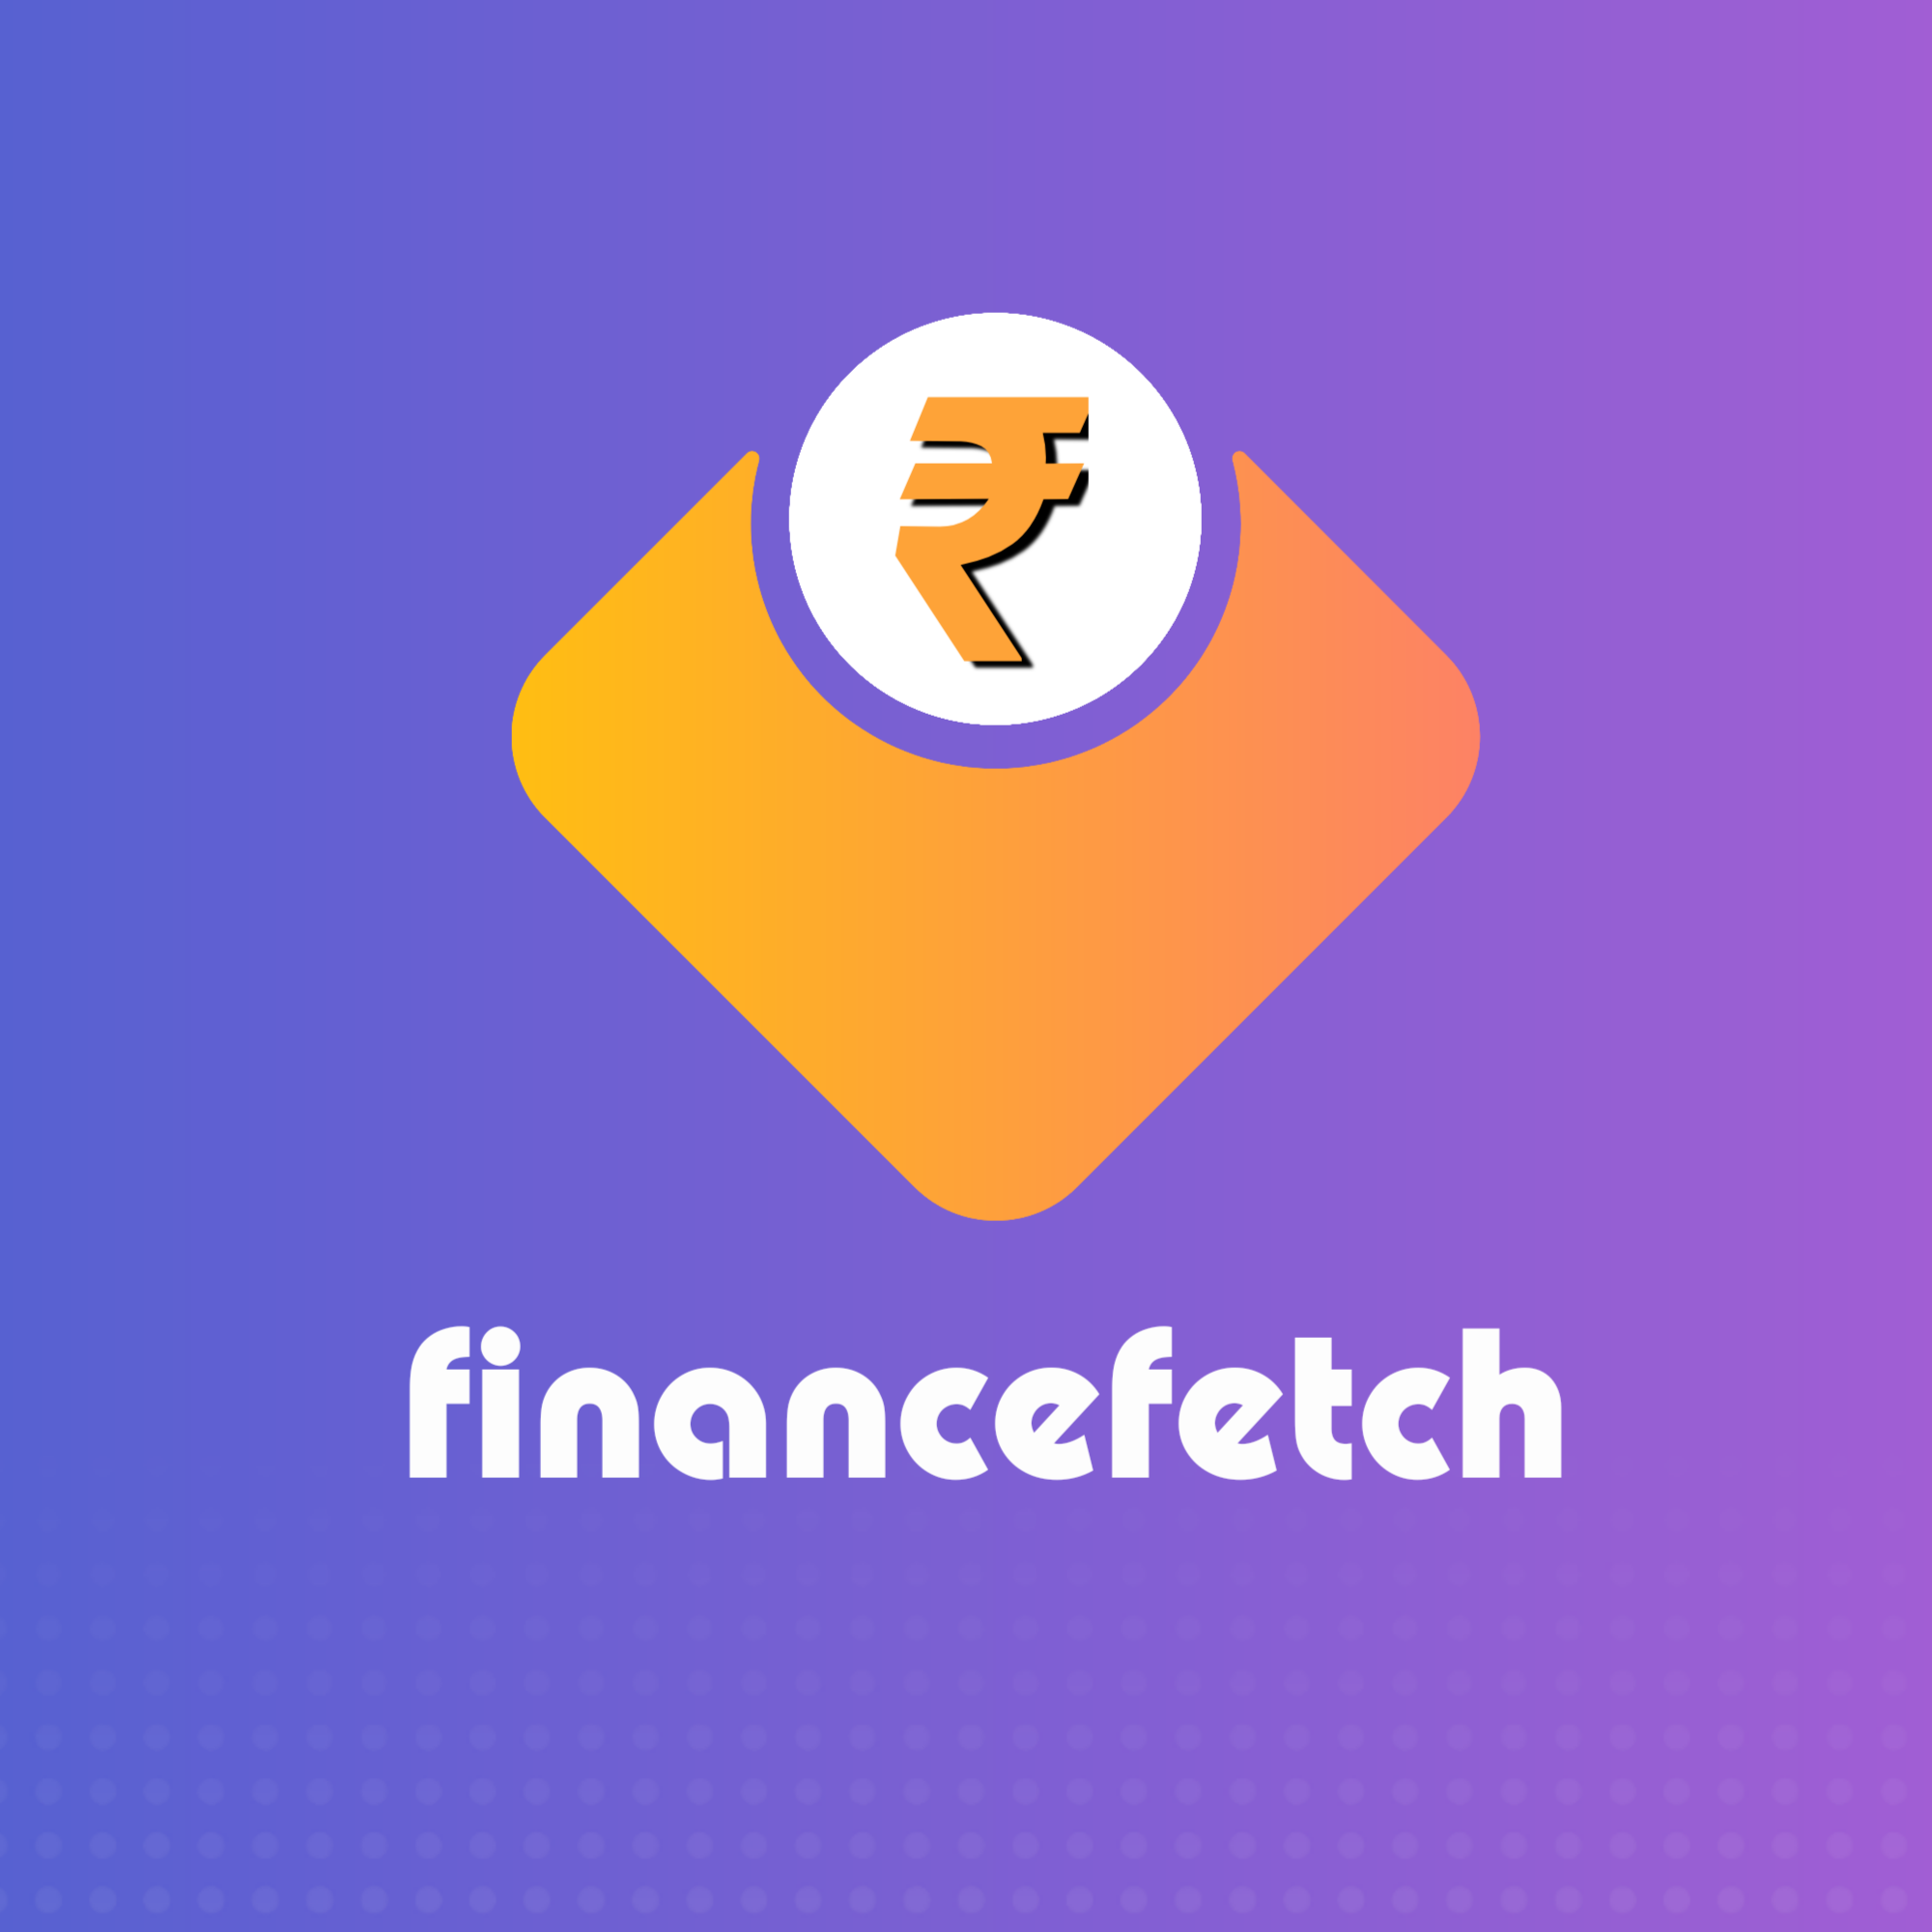 Financefetch